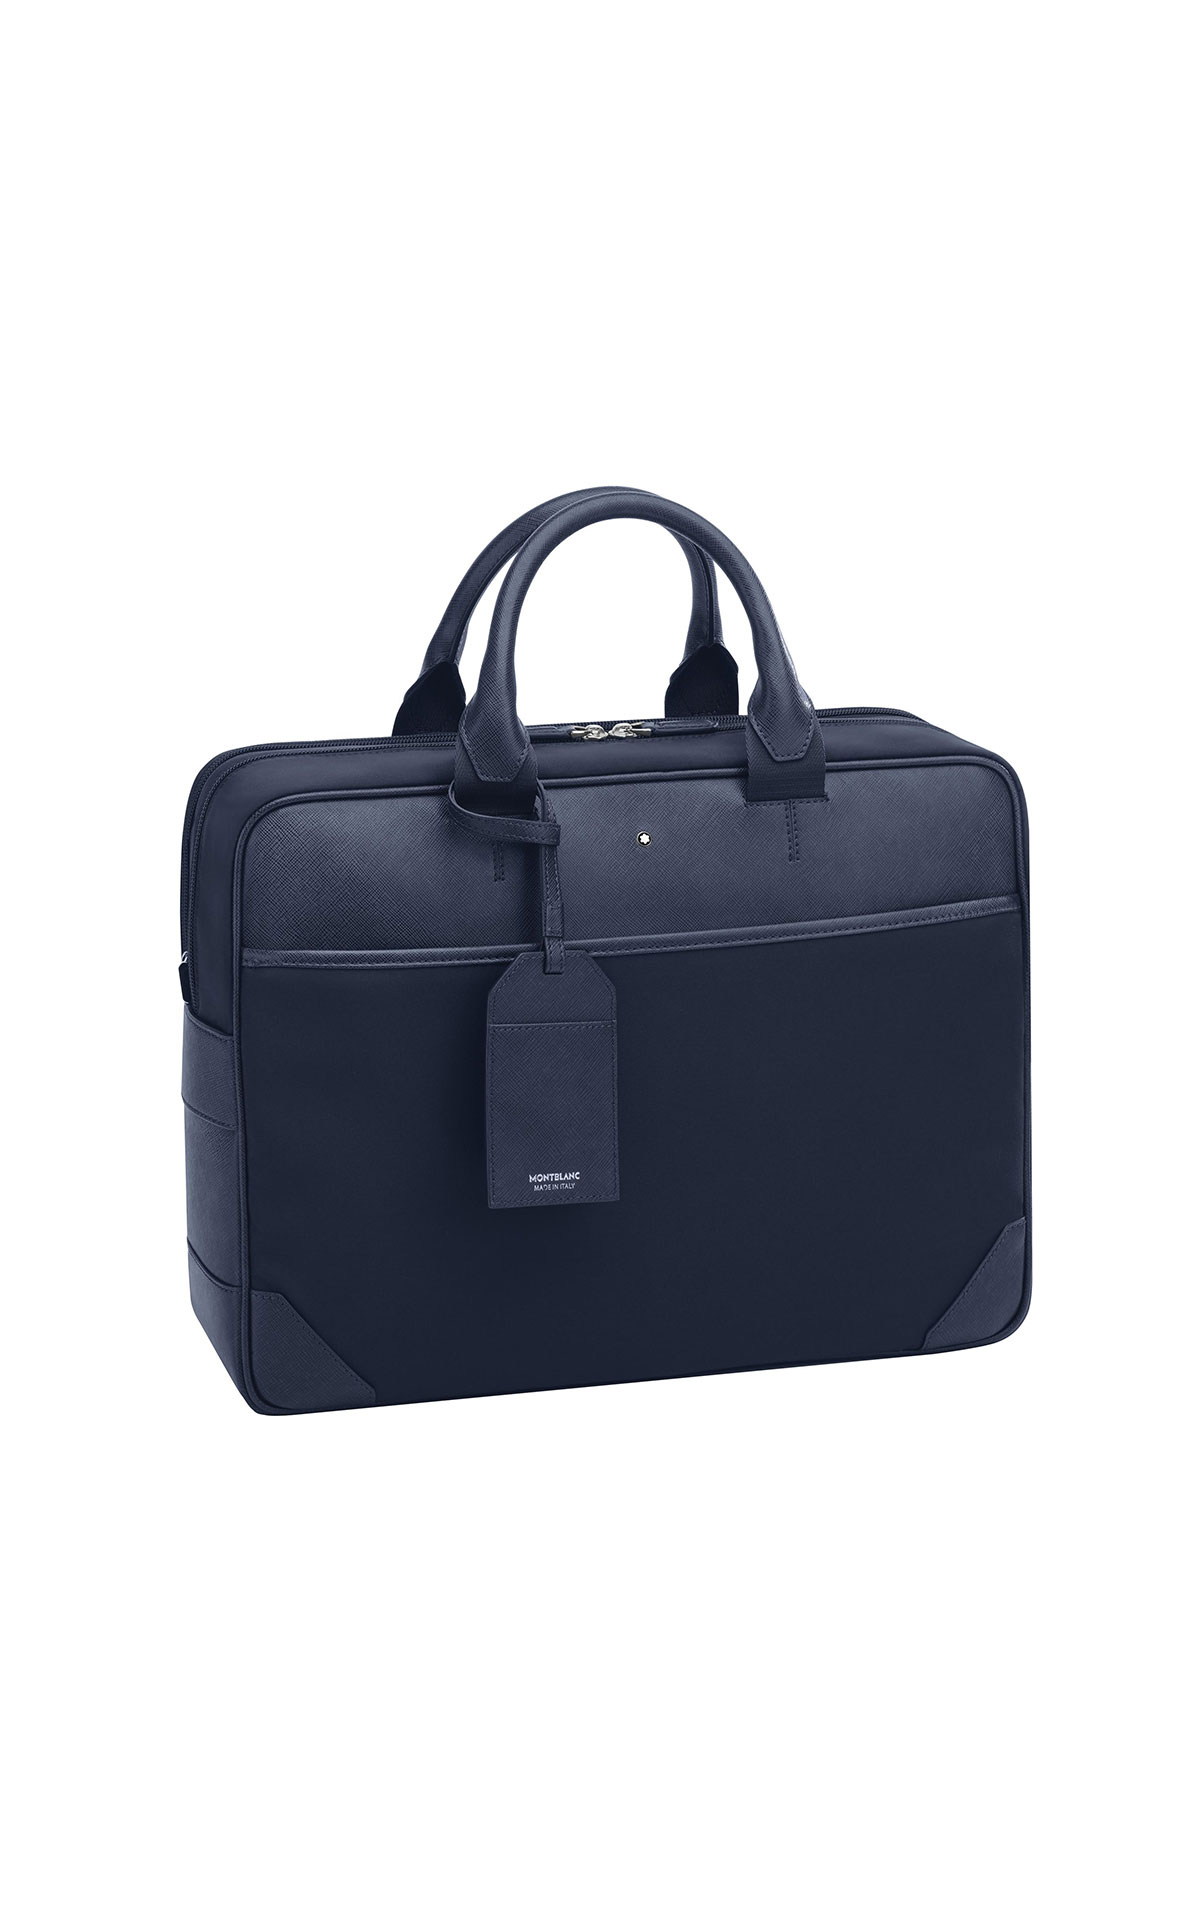 Montblanc Blue sartorial jet large document bag from Bicester Village